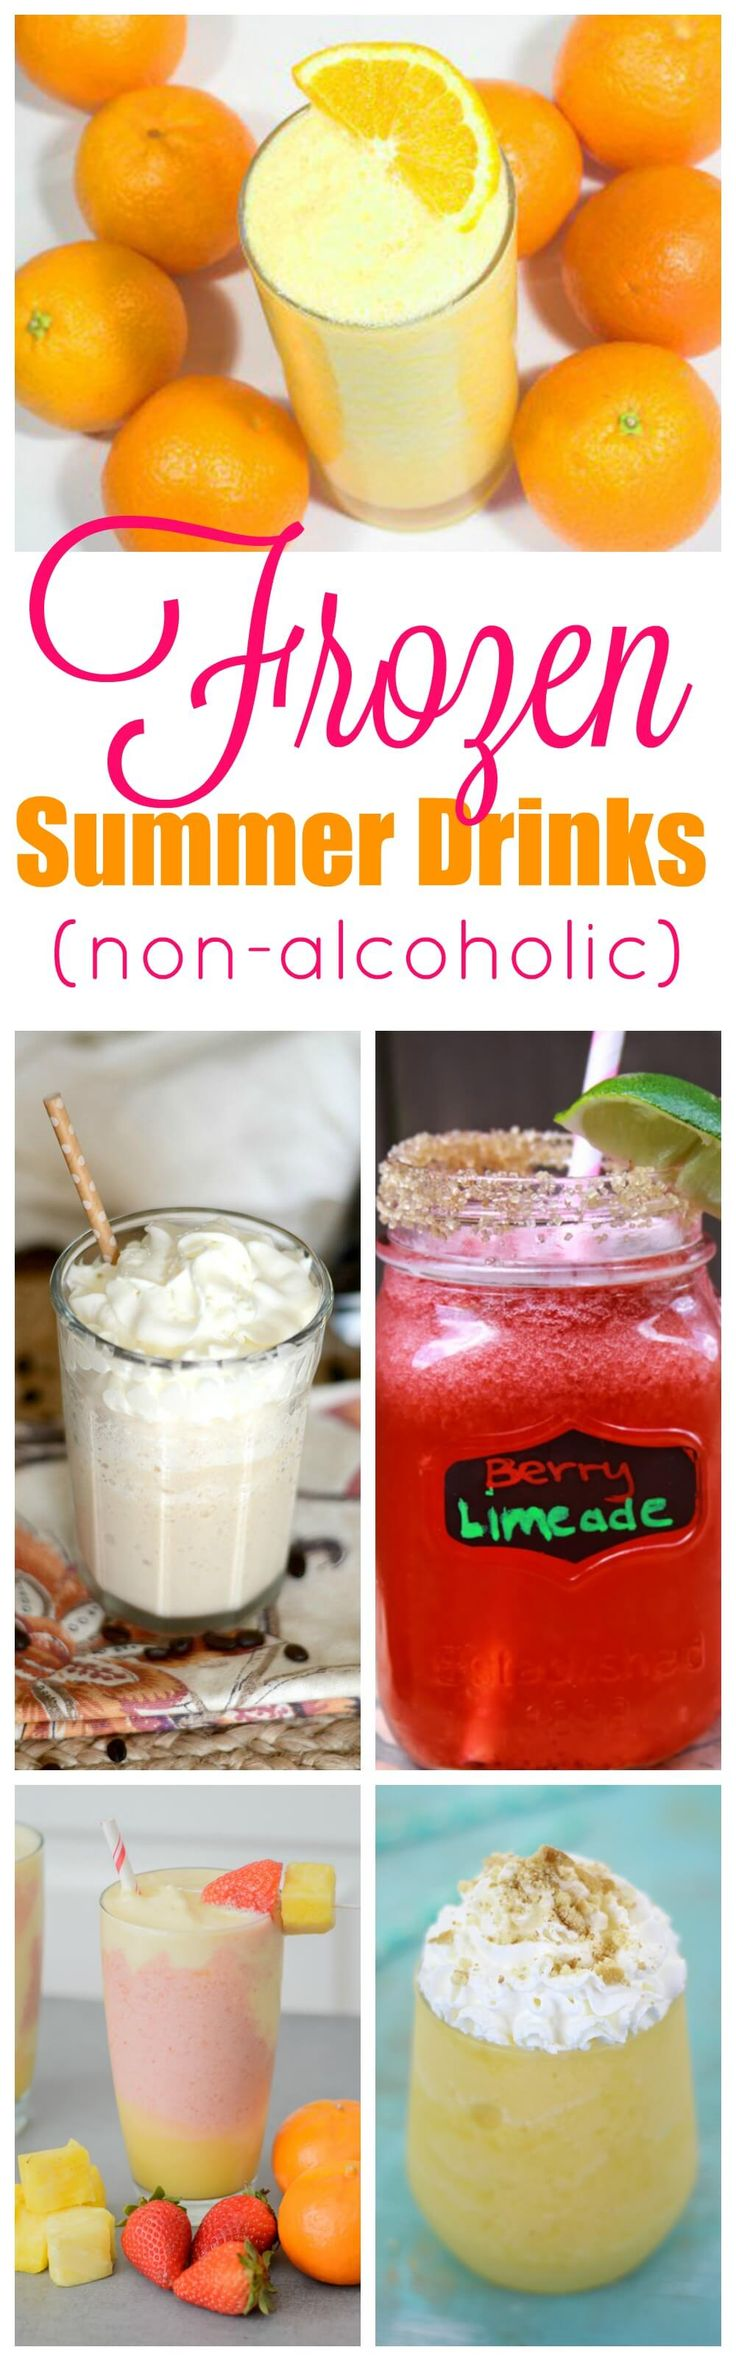 Summer is almost here and one of the best ways to beat the heat is with yummy Frozen Summer Drinks. All of the treats here don't have any alcohol, so make up a big batch and share with your guests of all ages.